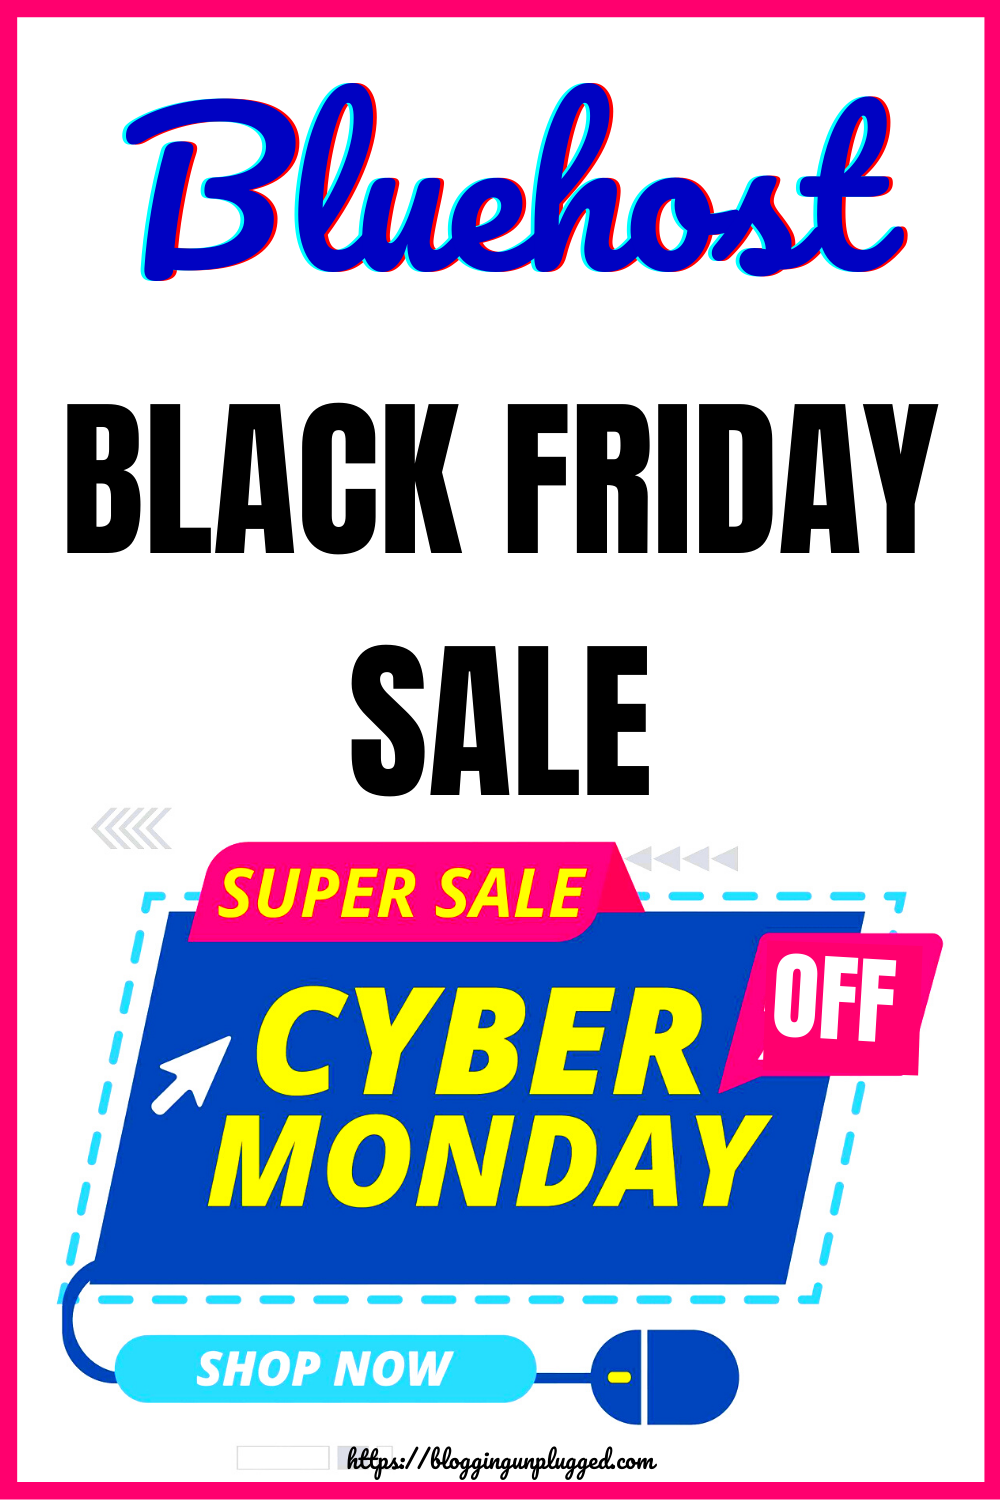 Bluehost Black Friday Cyber Monday Sale In 2020 Cyber Monday Deals Learn Blogging About Me Blog